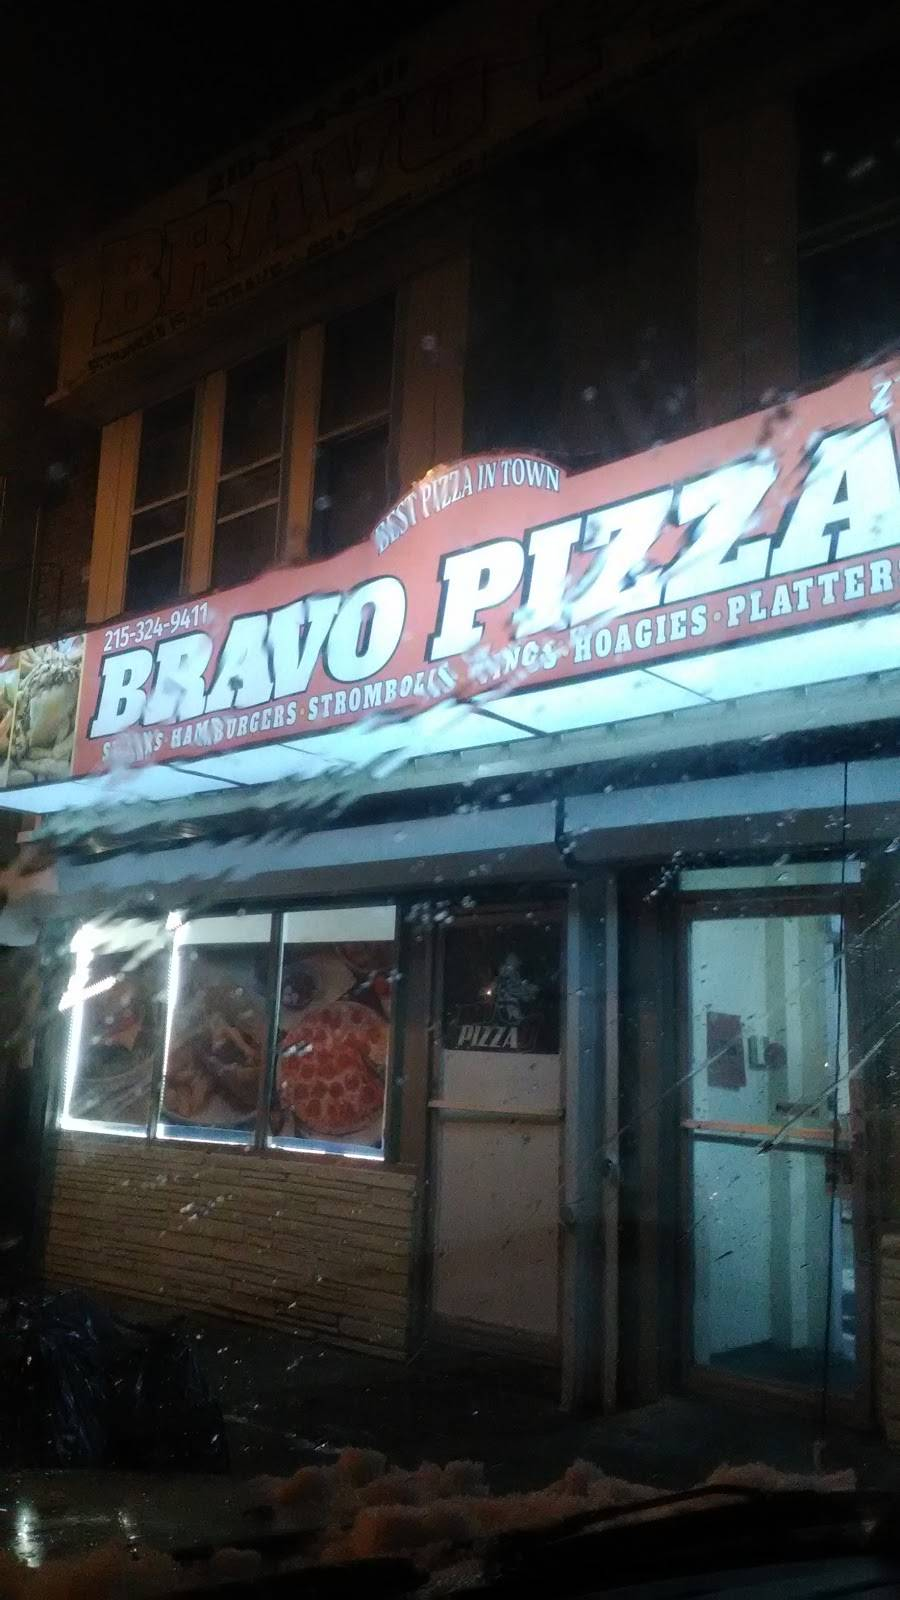 Bravo Pizza II | meal delivery | 1323 Lindley Ave, Philadelphia, PA 19141, USA | 2153249411 OR +1 215-324-9411